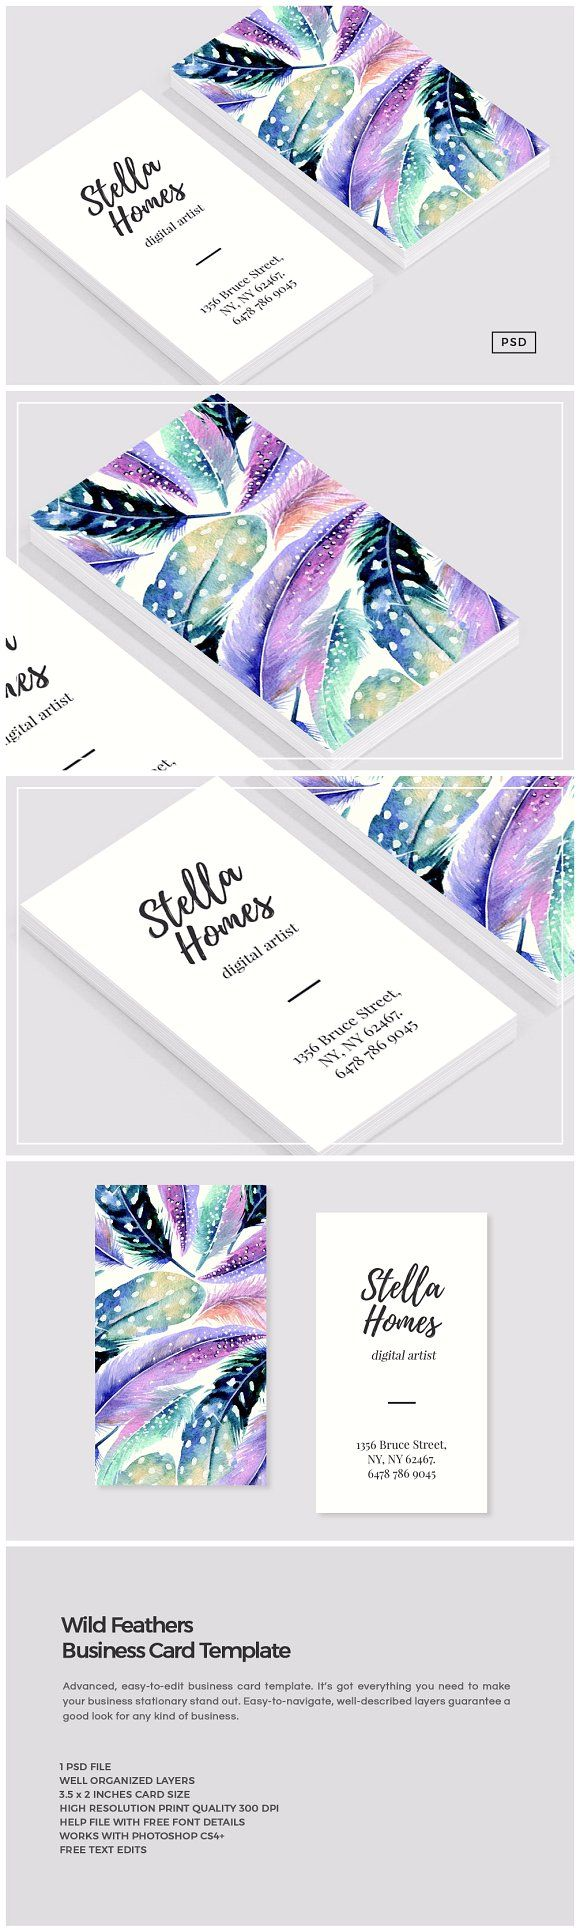 317 Best Business Cards Images On Pinterest Business Card Design